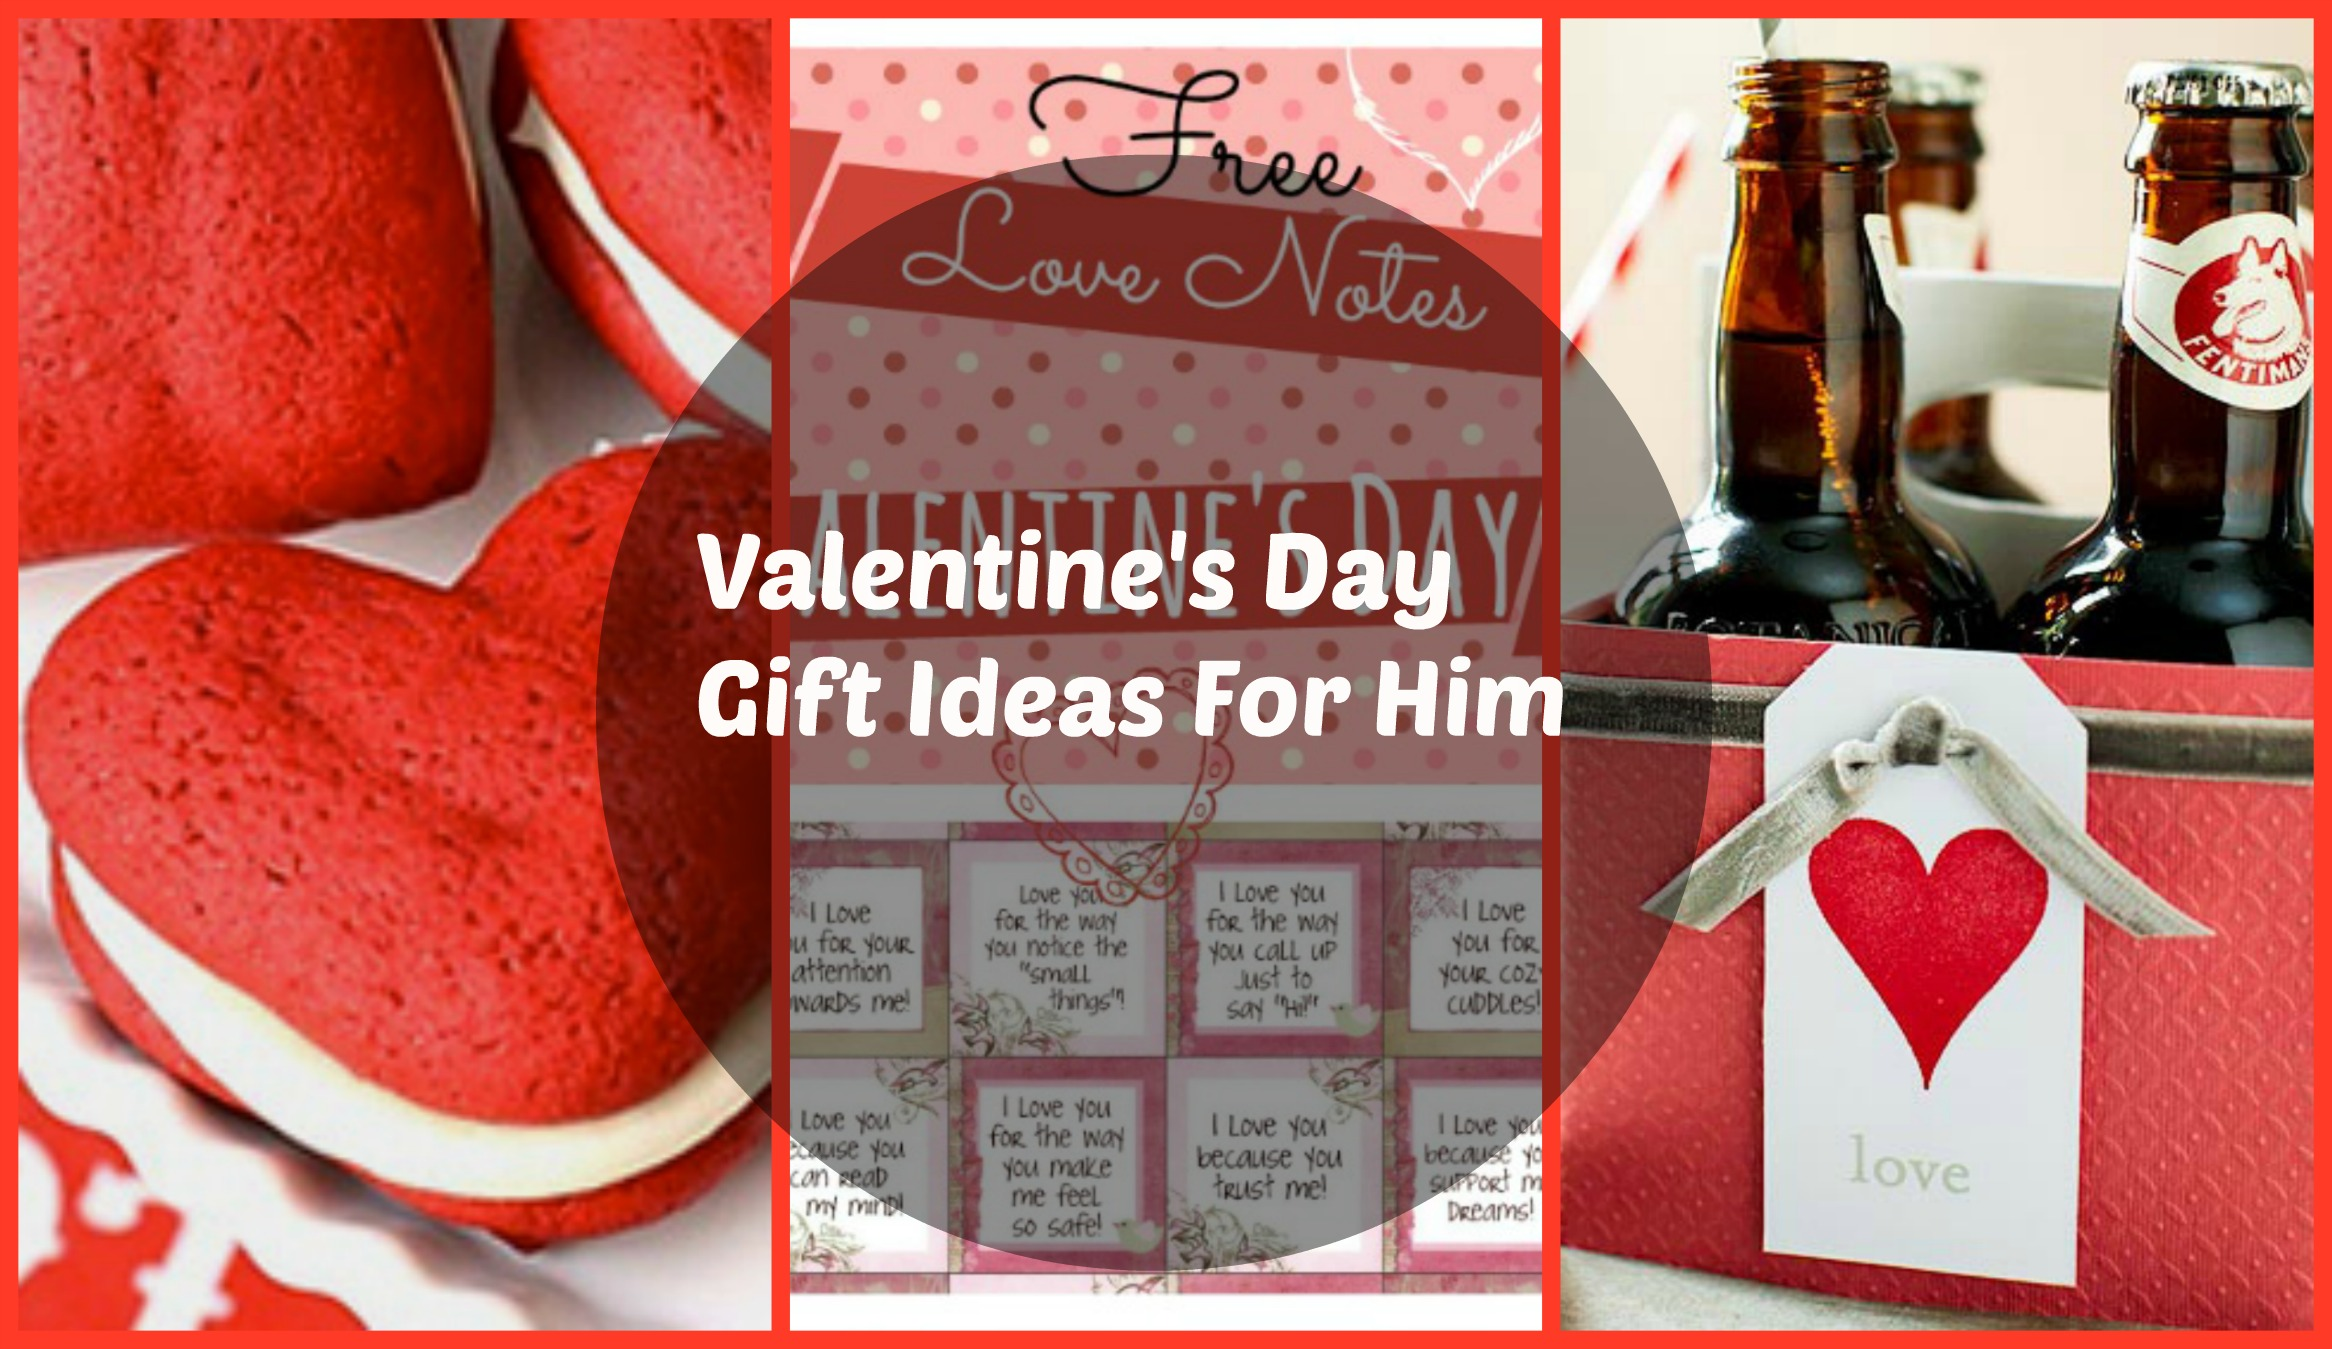 Valentine 39 s gift ideas for him archives fashion trend seeker Best valentine gifts for him